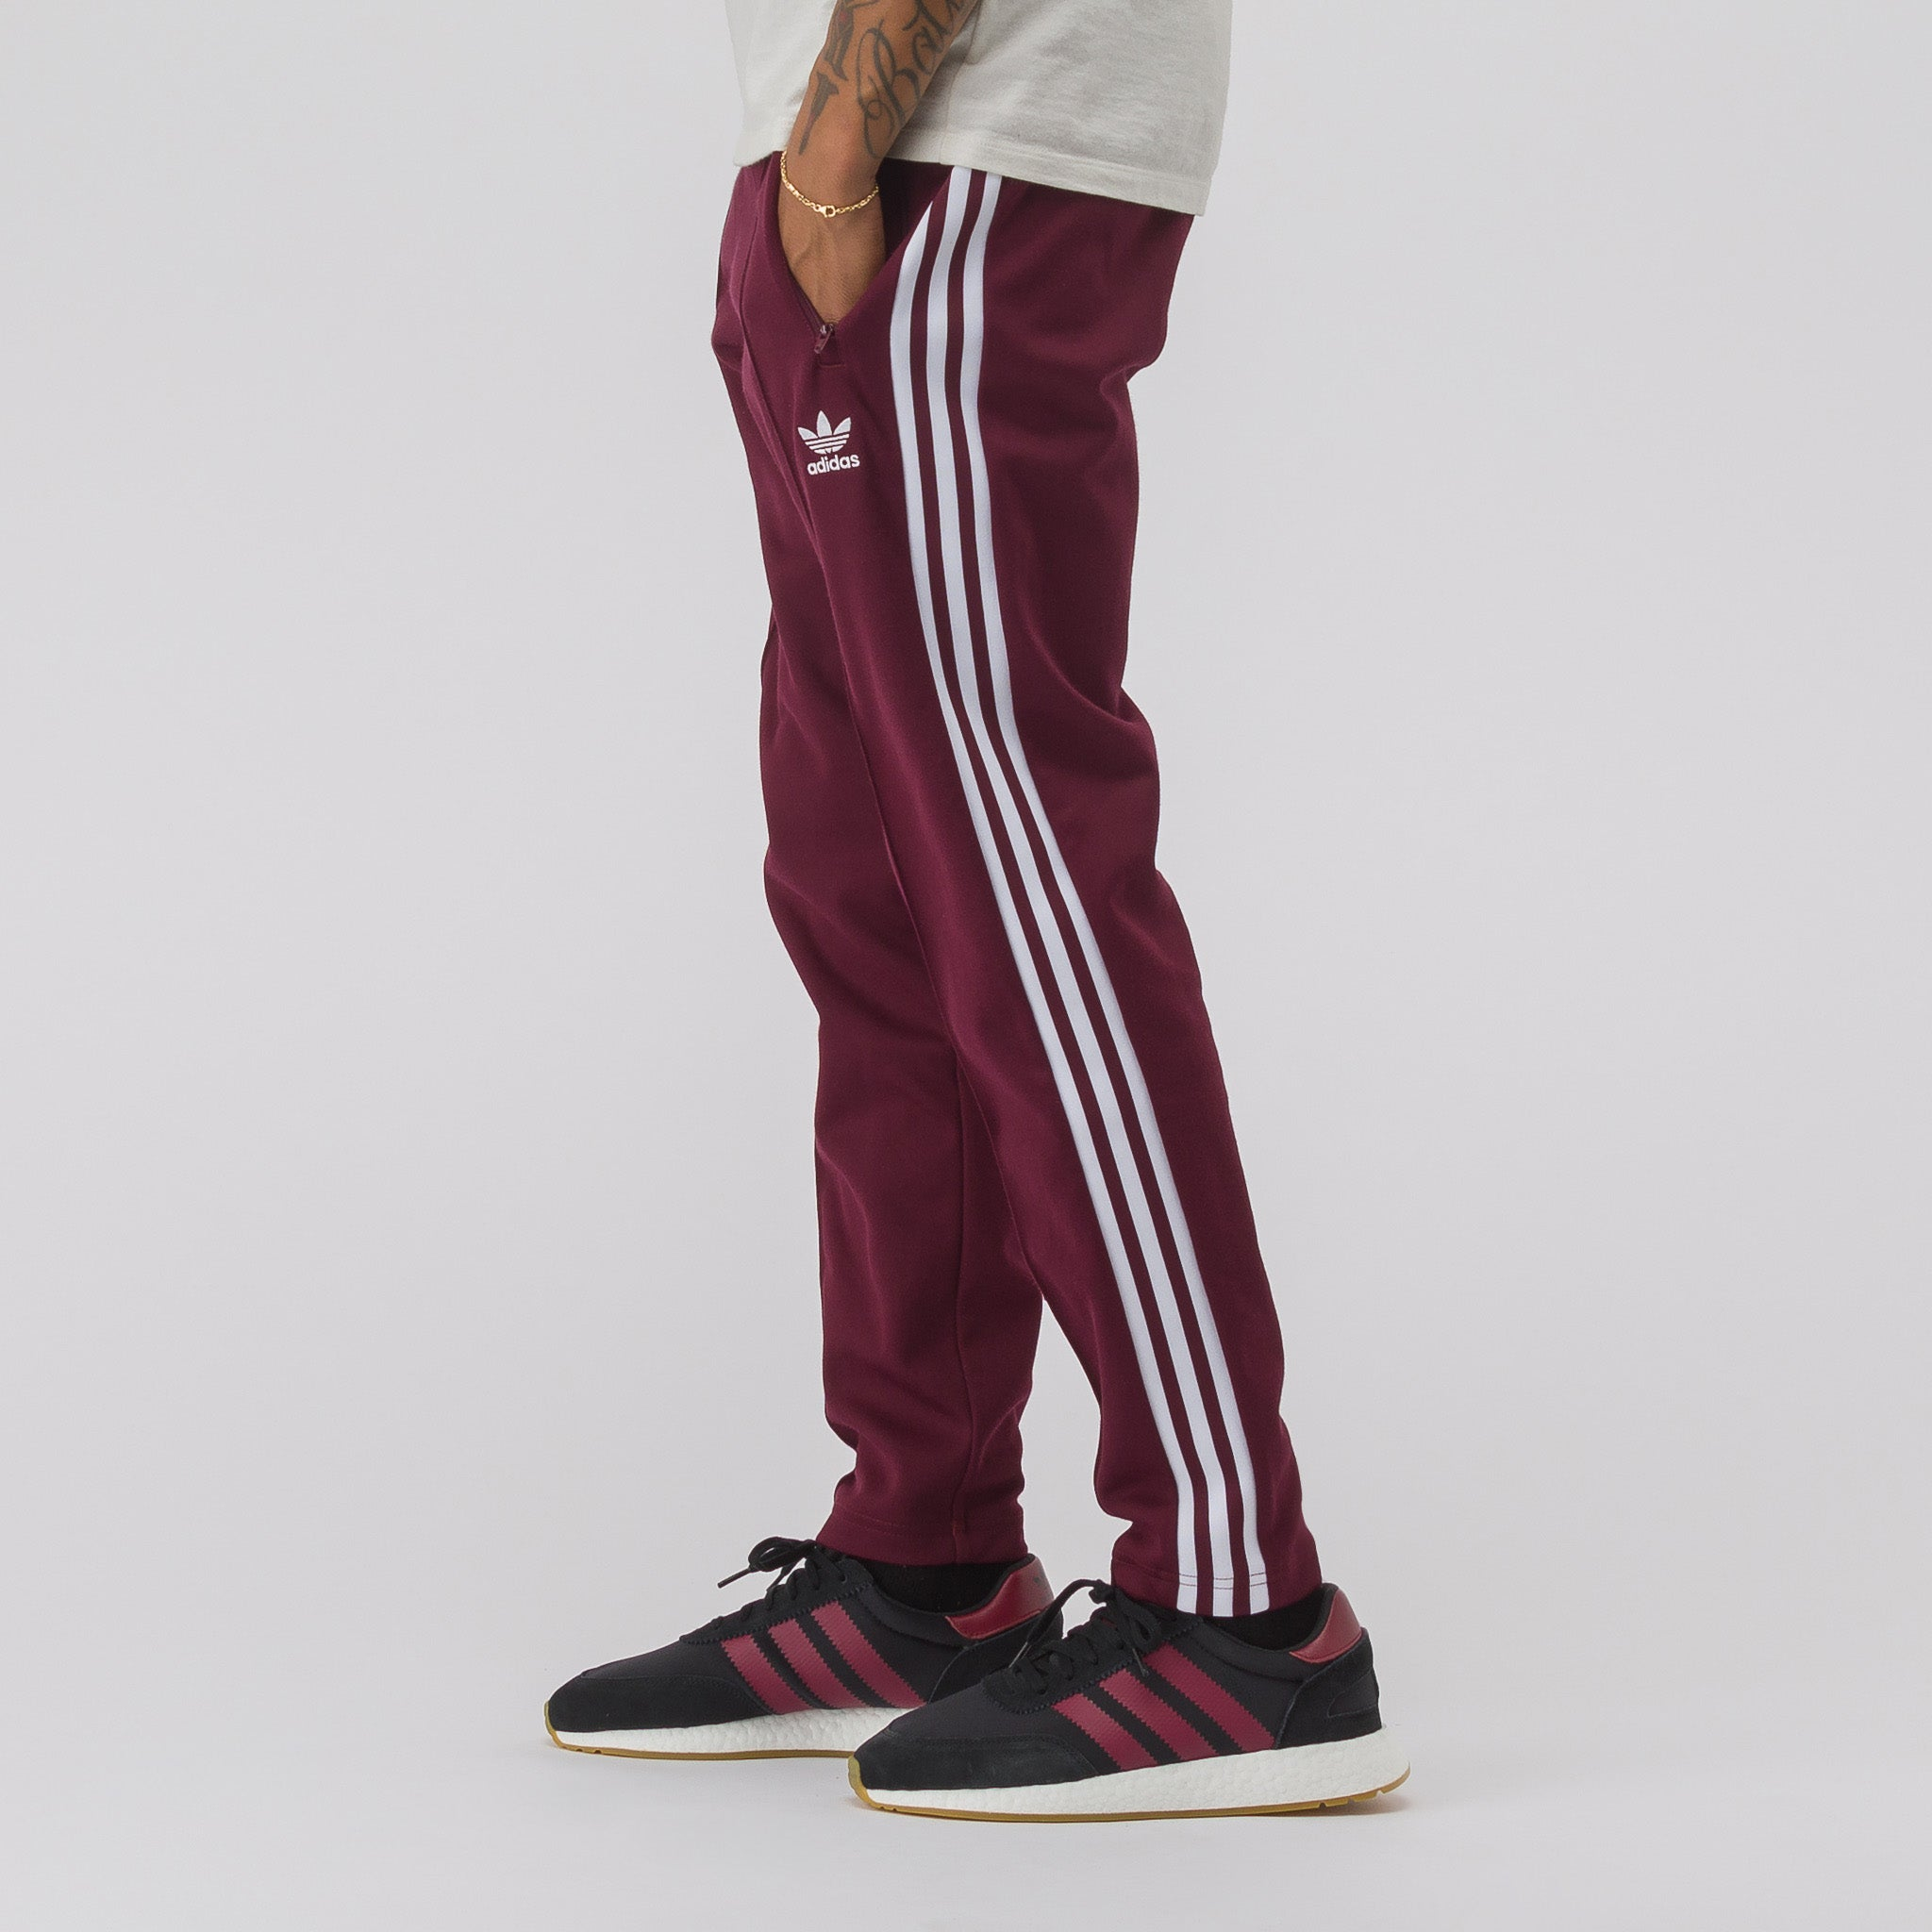 a20575ce21f4 NOTRE-CHICAGO-ADIDAS-BECKENBAUER-TRACK-PANT-RED-6877 2048x2048.jpg